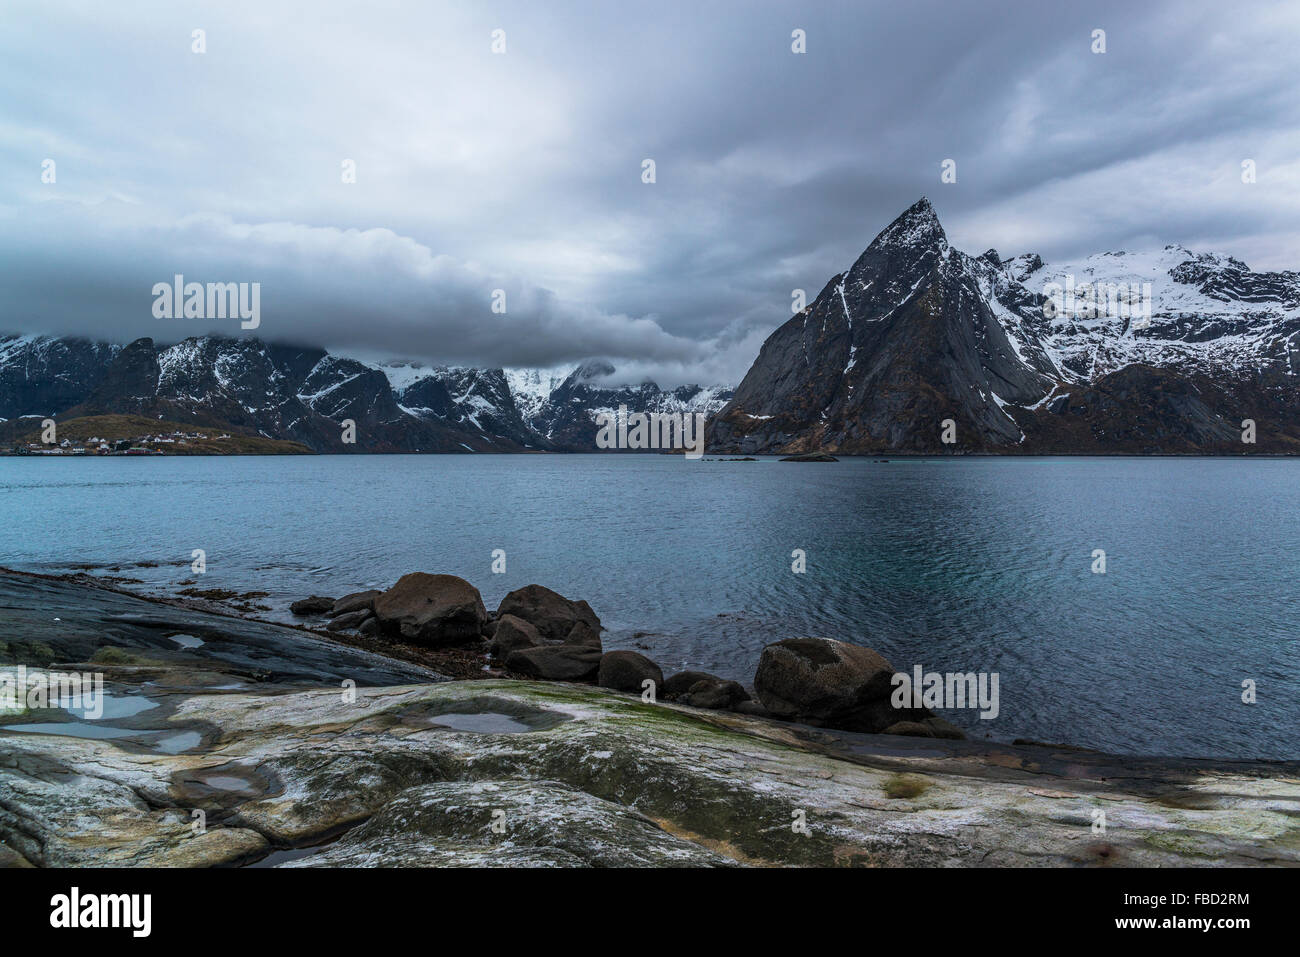 The coast of Hamnøy with Mount Olstinden, Lofoten, Norway Stock Photo